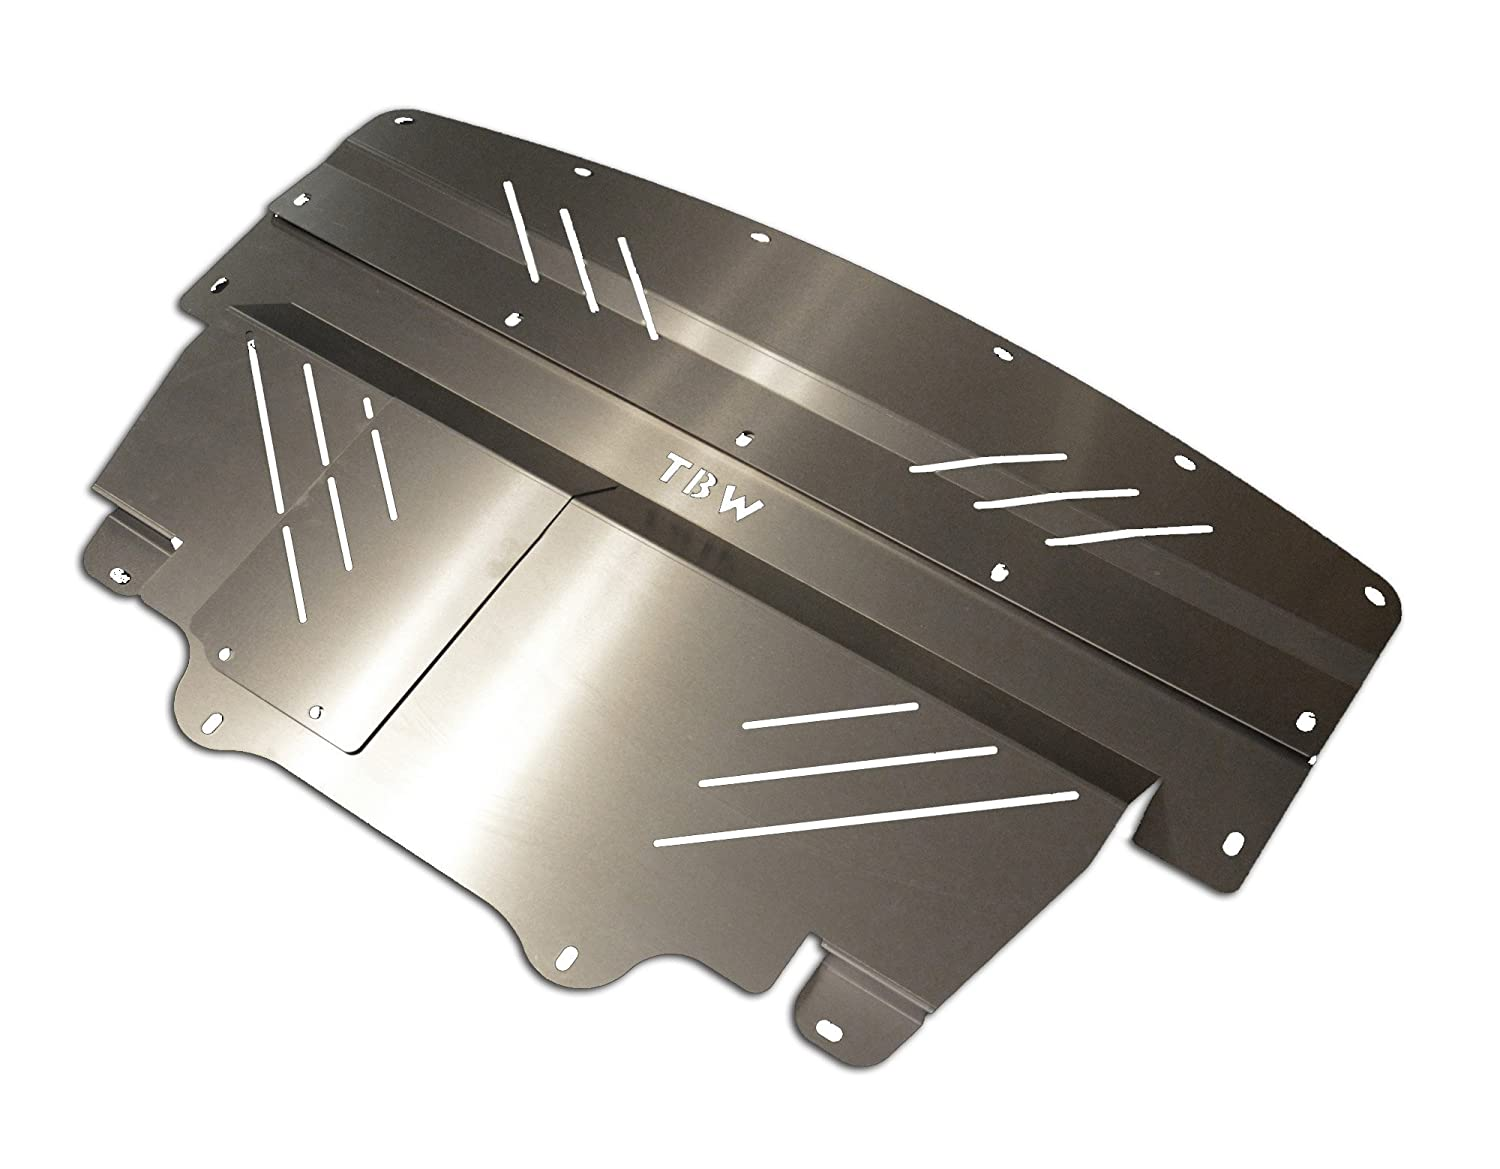 SILVER TBW Aluminum Under Tray for AWD Infiniti G37X Engine Skid Plate TBW Performance